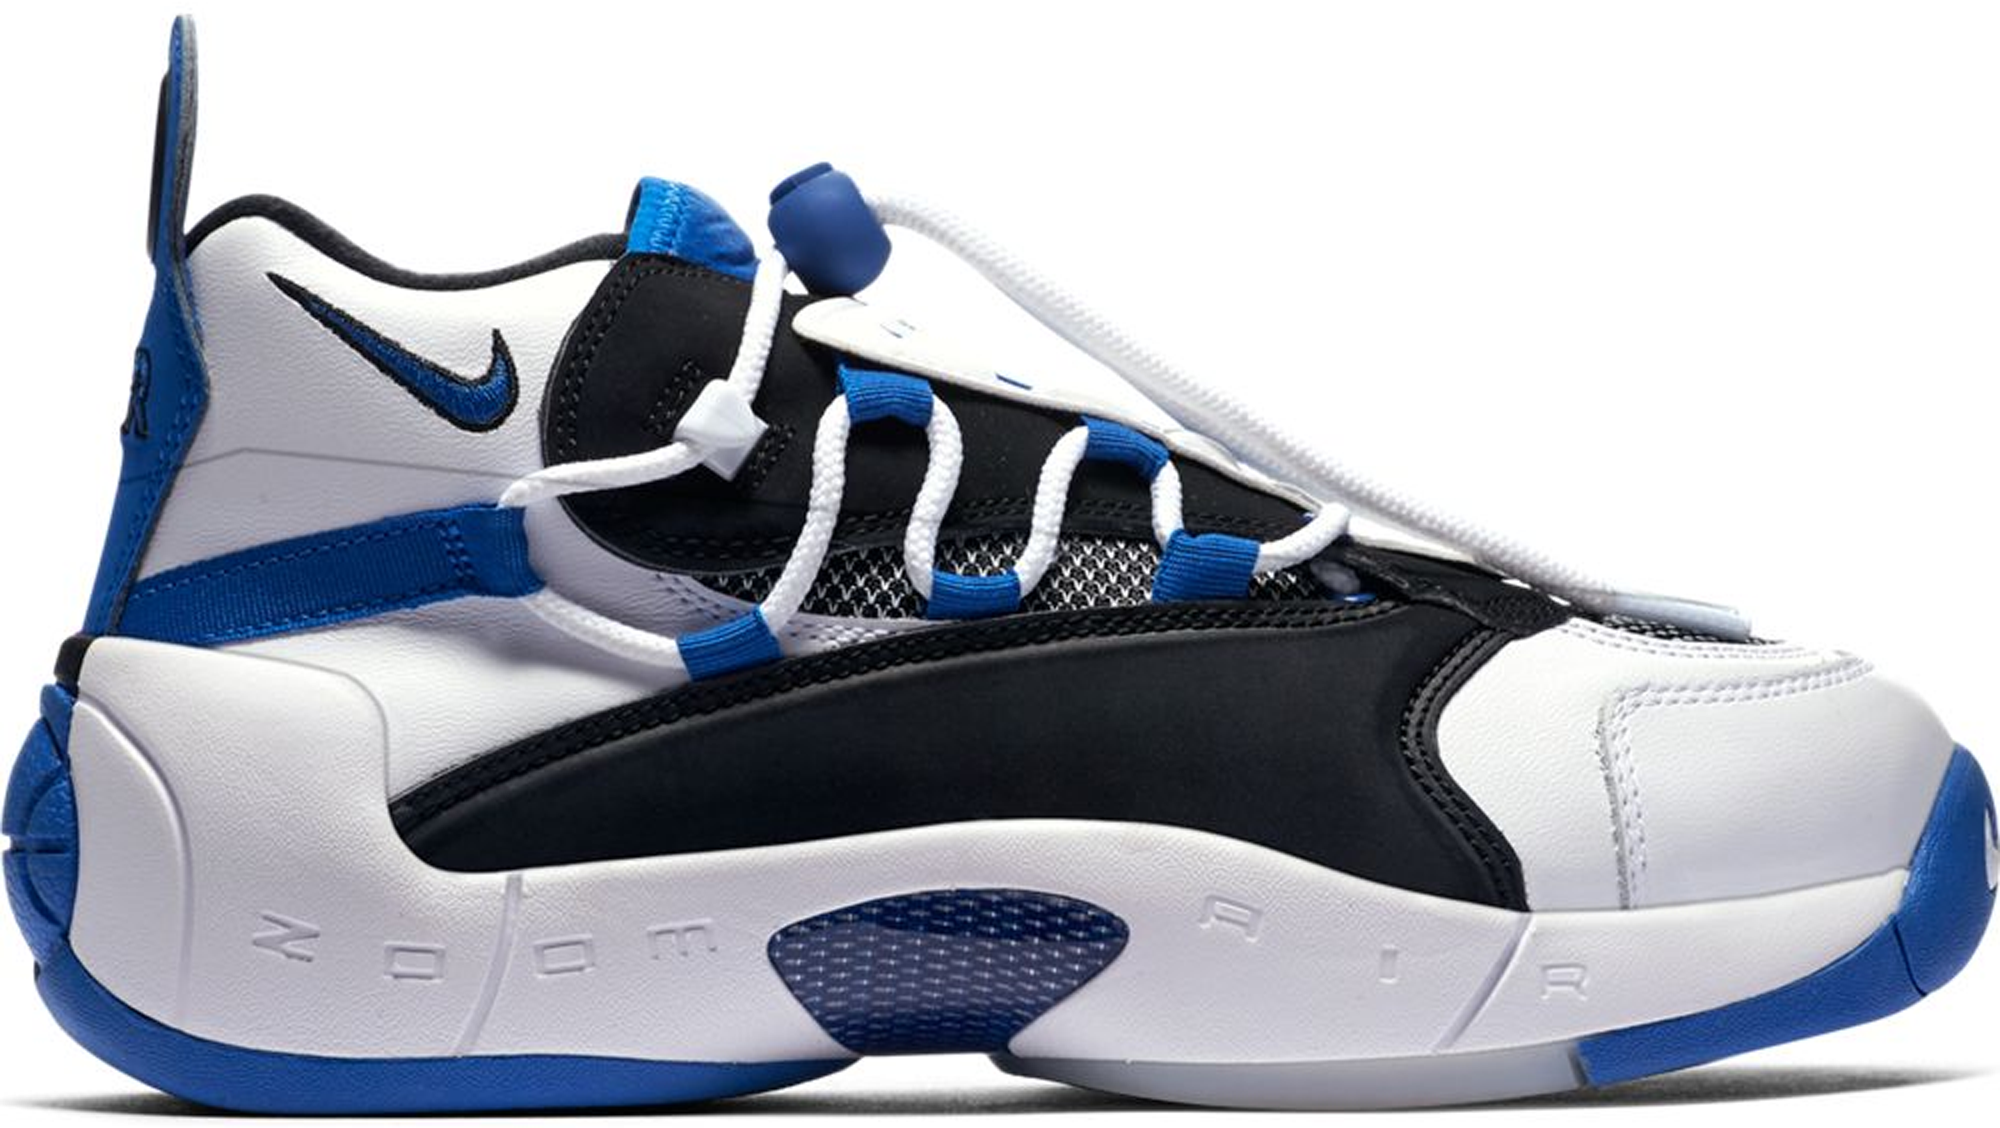 reputable site 0352b a36aa Nike Air Swoopes 2 White Black Royal